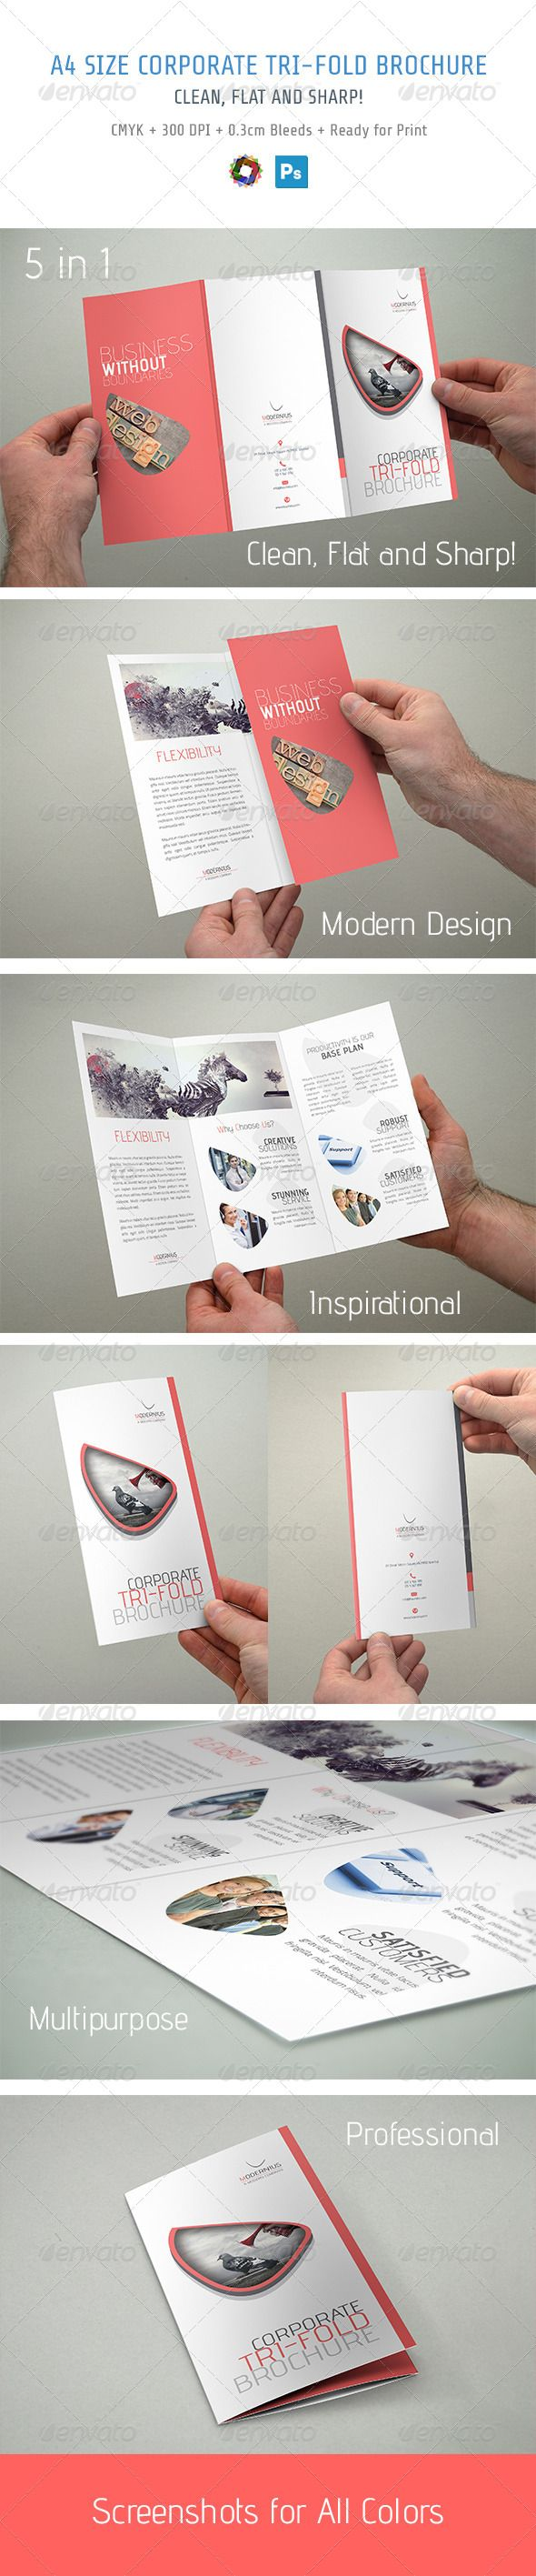 Trifold Brochure - Print Templates